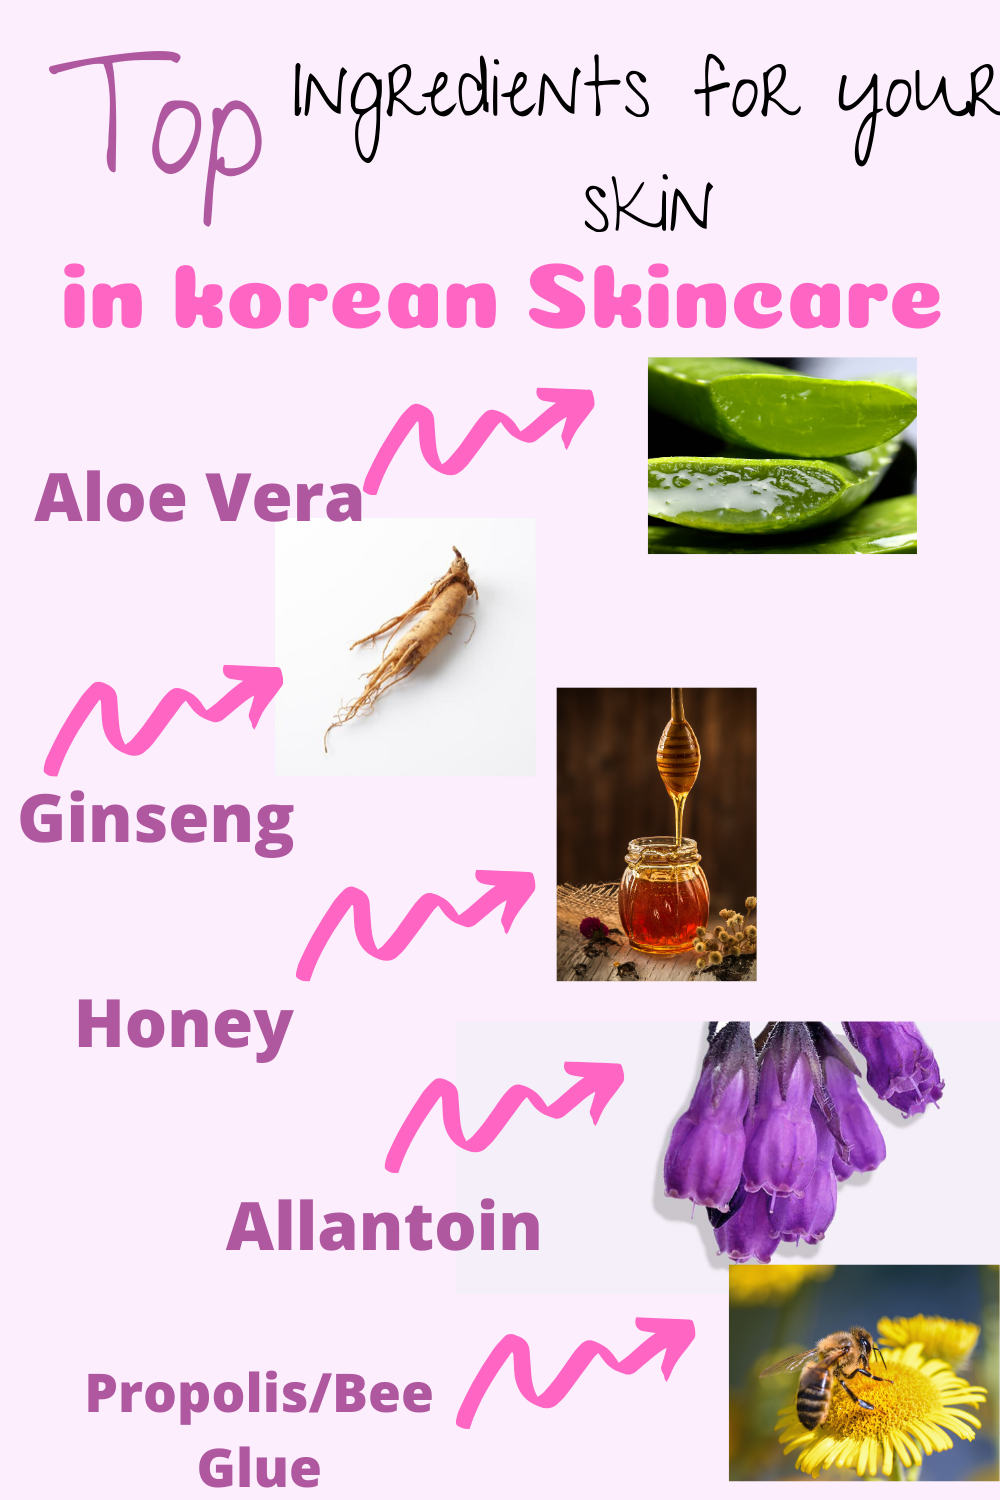 The ingredients is what makes korean skincare so amazing and beneficial for our skin.